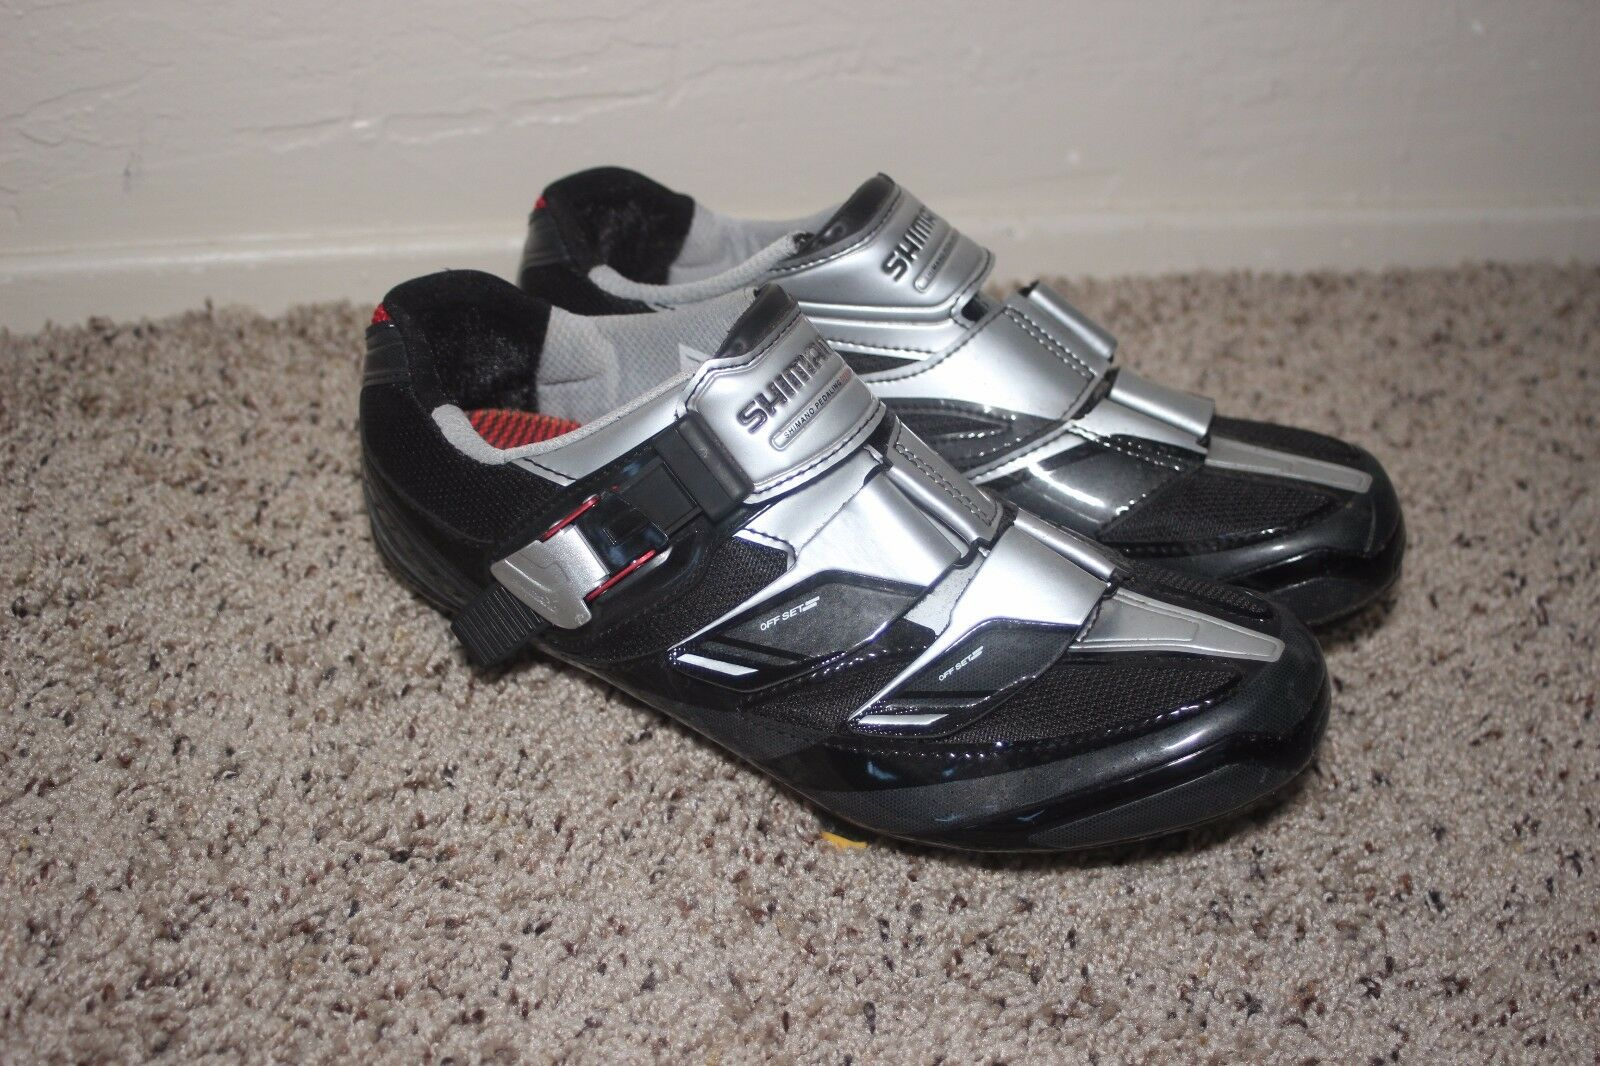 Shimano Elite Racing Cycling shoes SH-R 191 L - US 8.9 Carbon. w  cleat